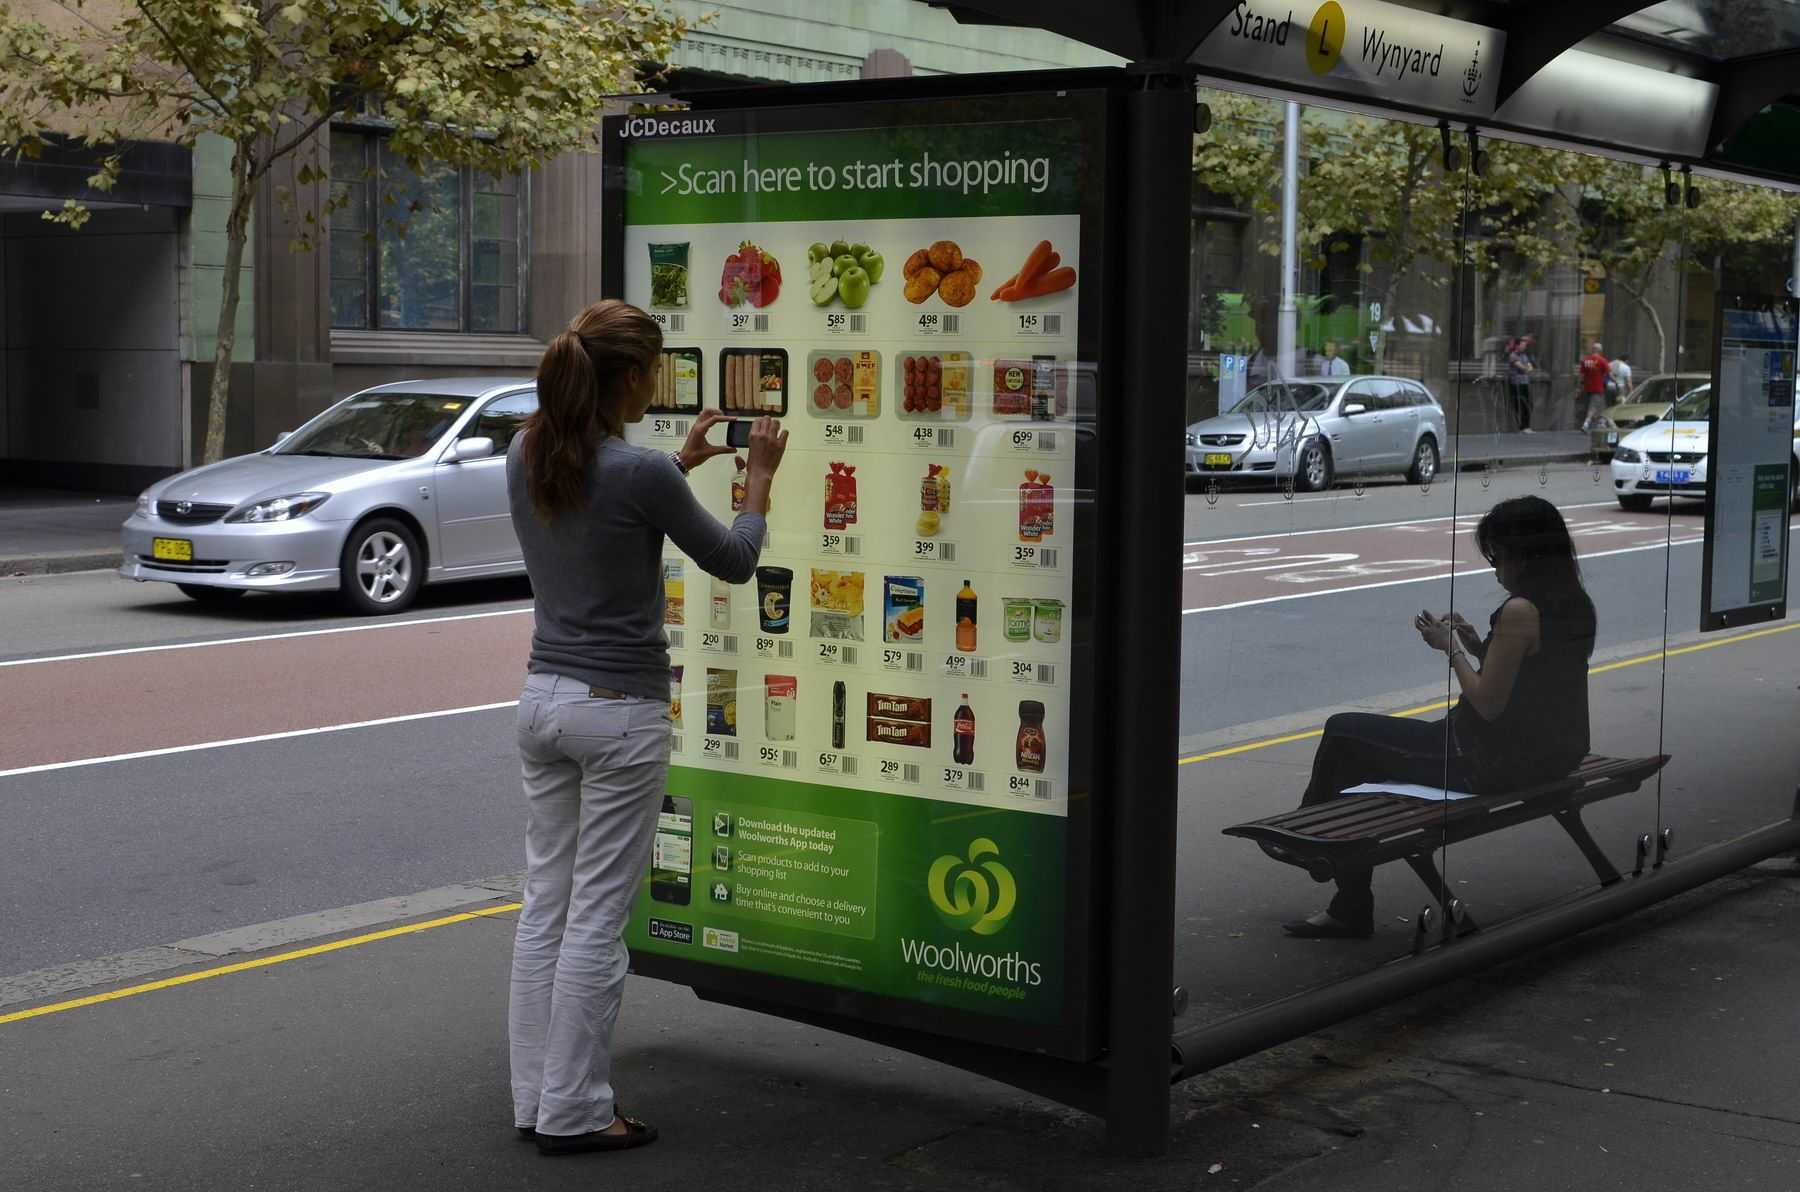 Ooh creative qr codes 5 inspirational ideas jcdecaux for Innovative home designs and marketing